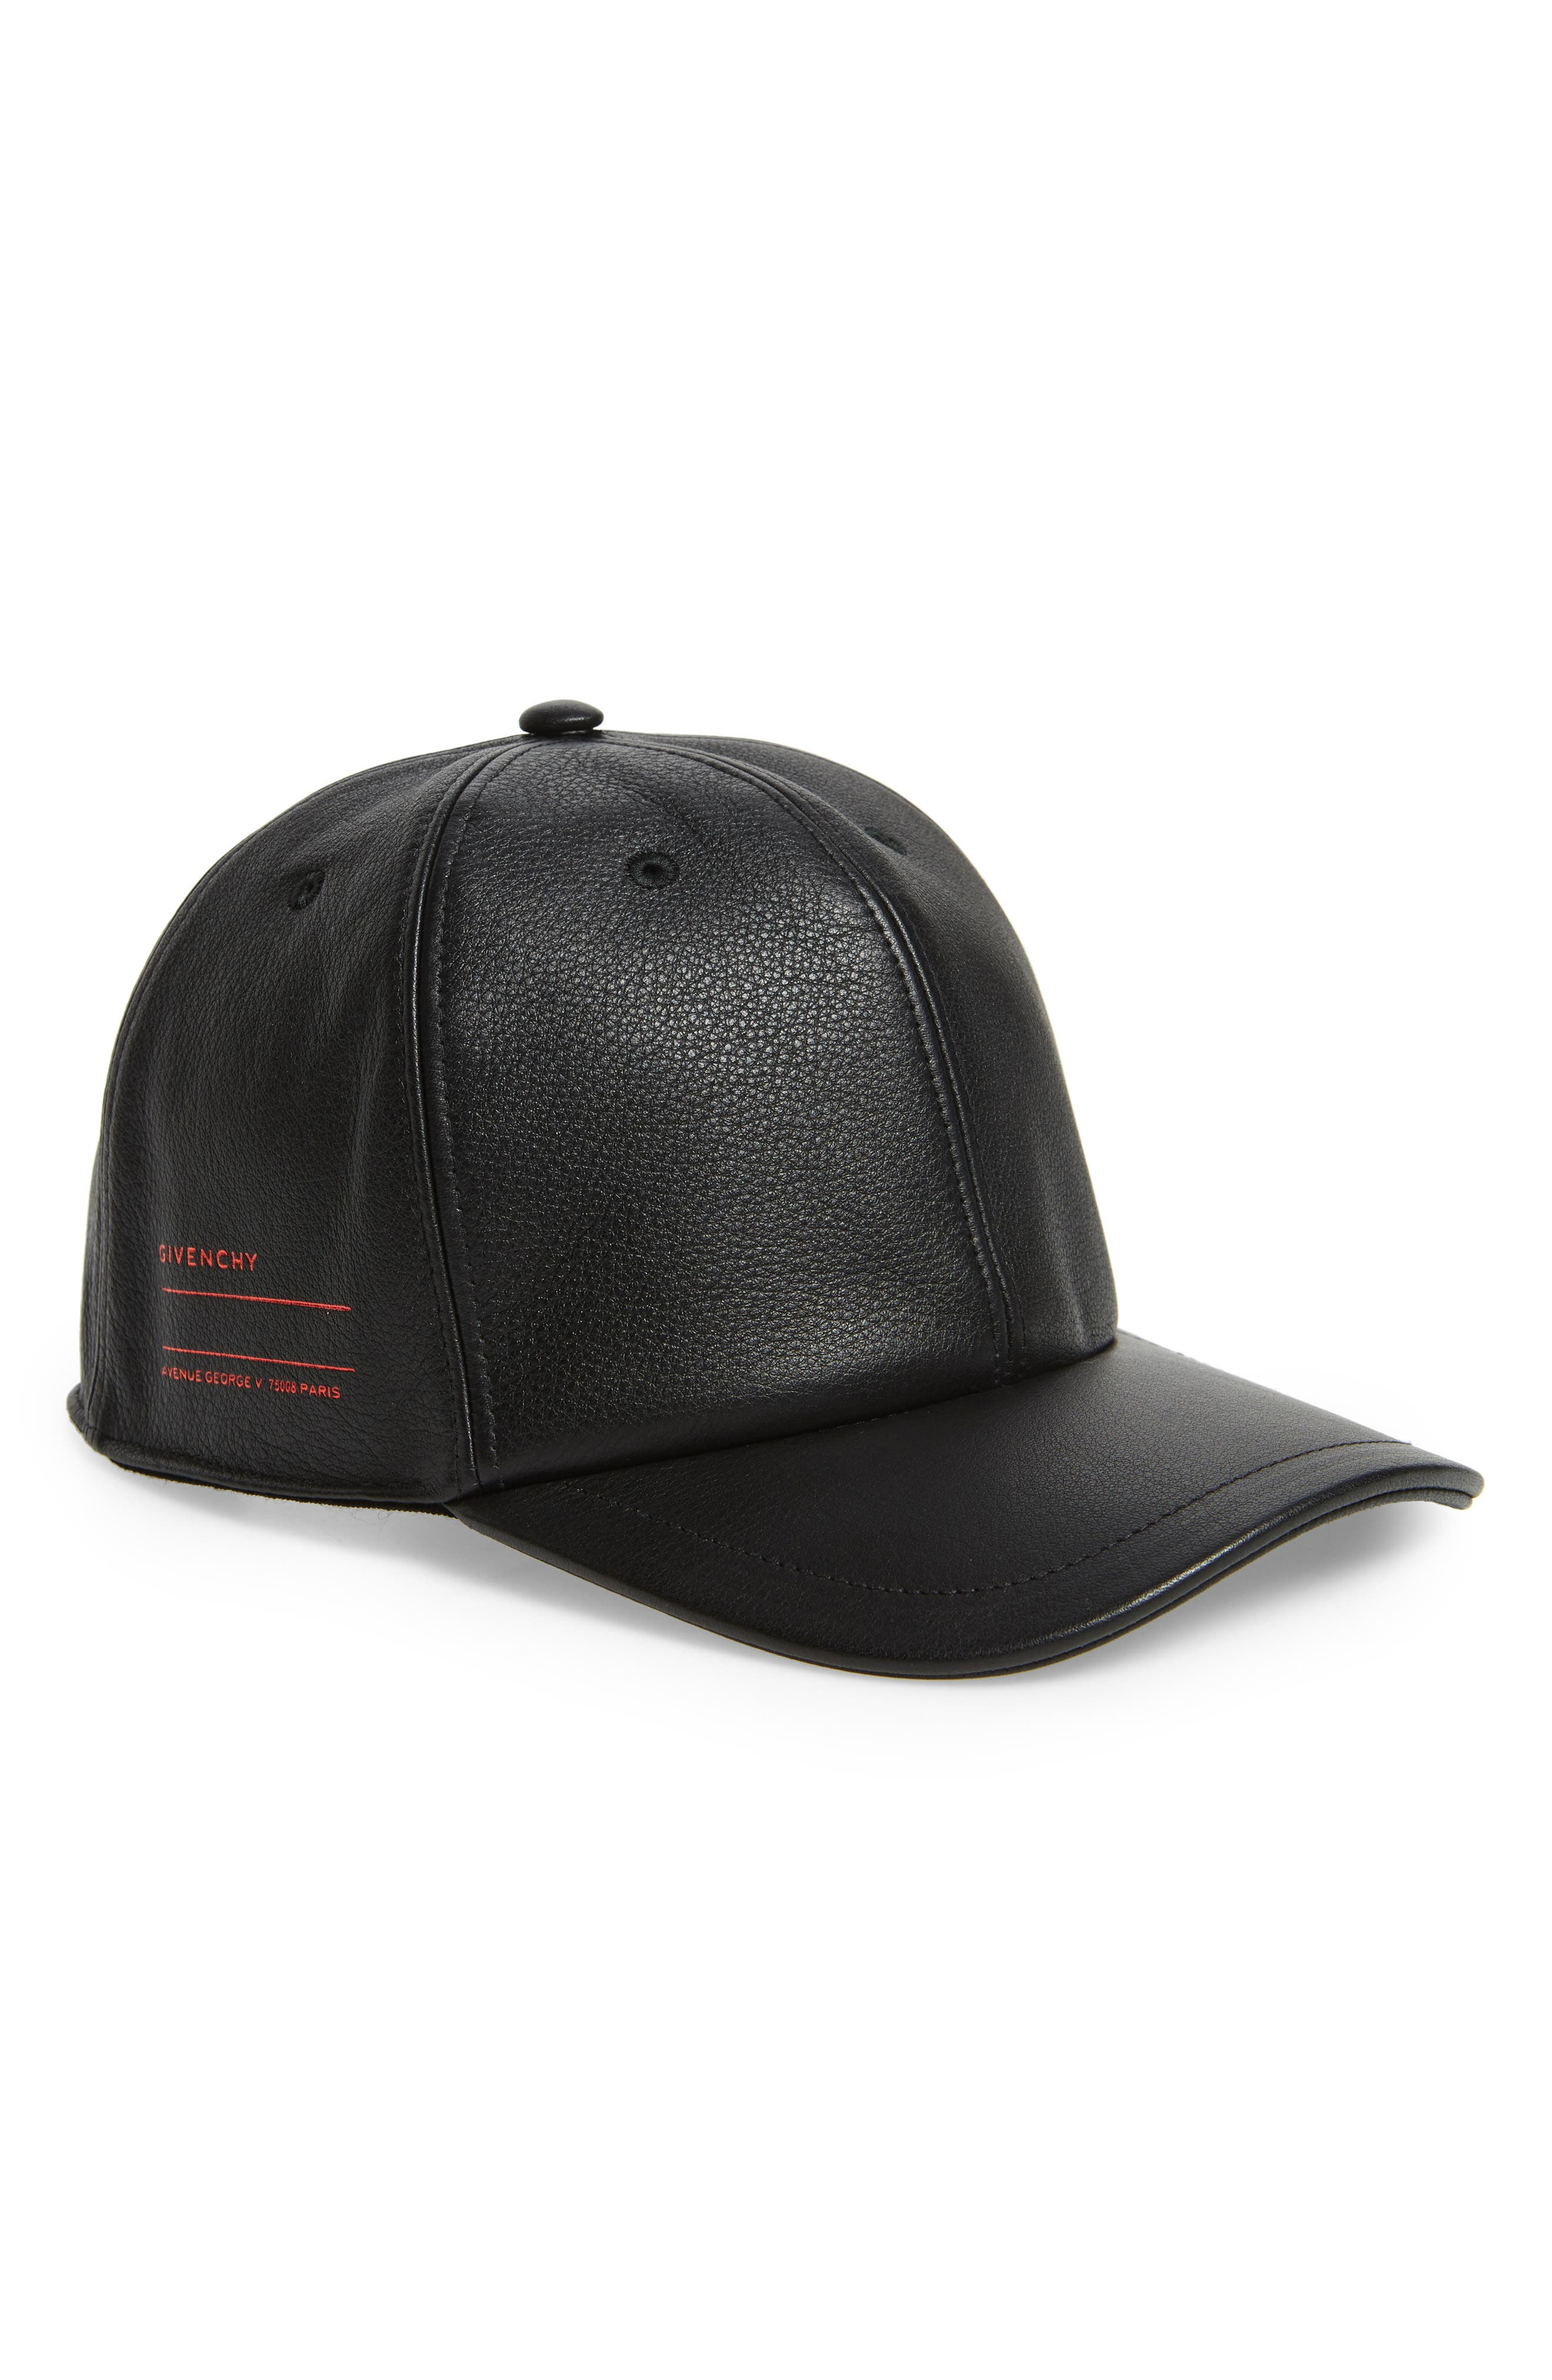 Leather Ball Cap,                         Main,                         color, 005